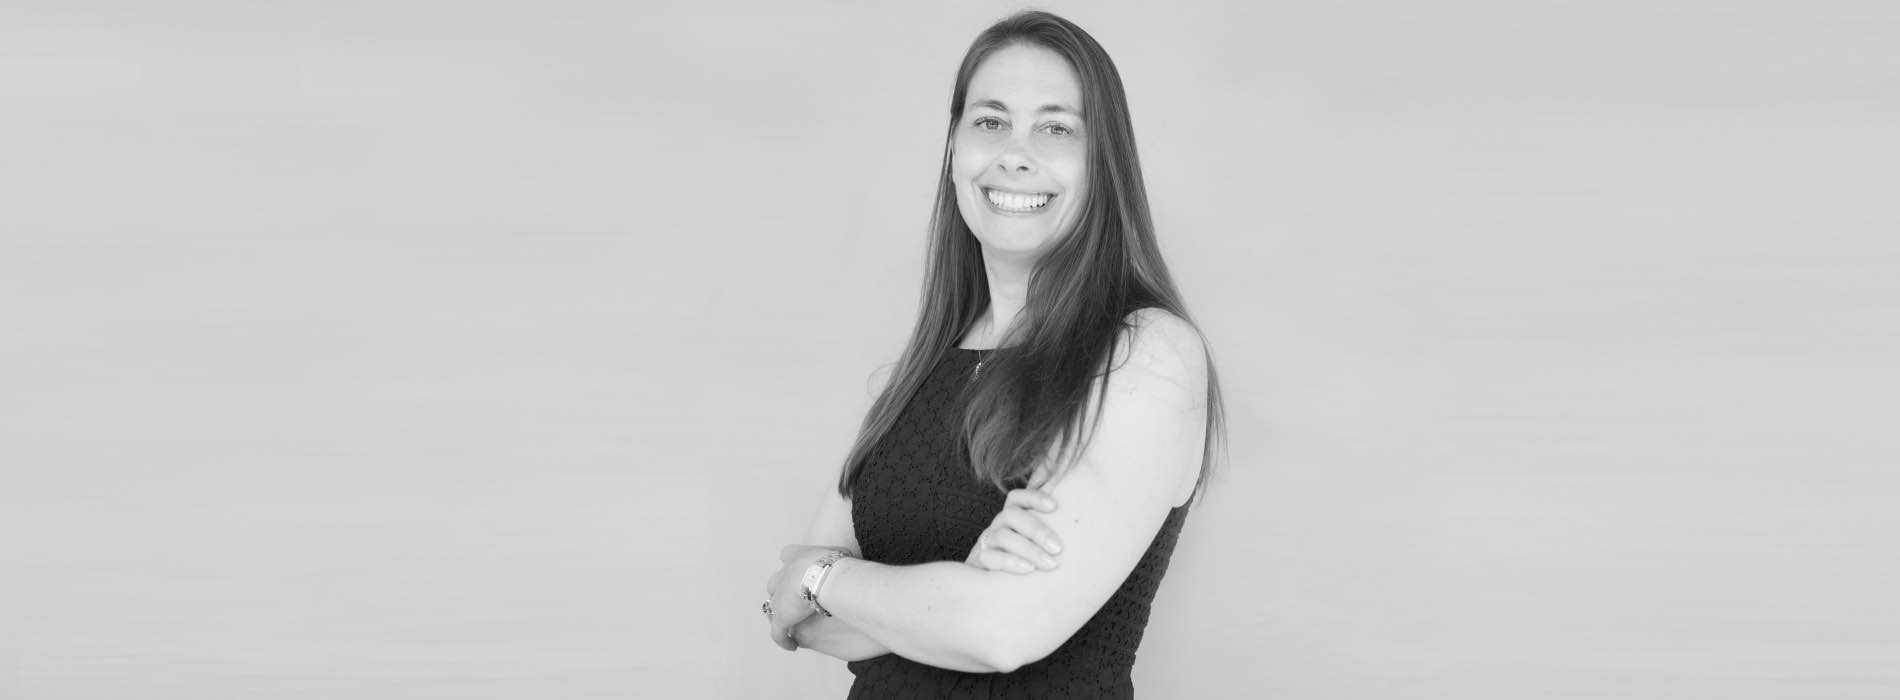 Laura Mather, Founder and CEO at Unitive, Inc. (Talent Sonar)